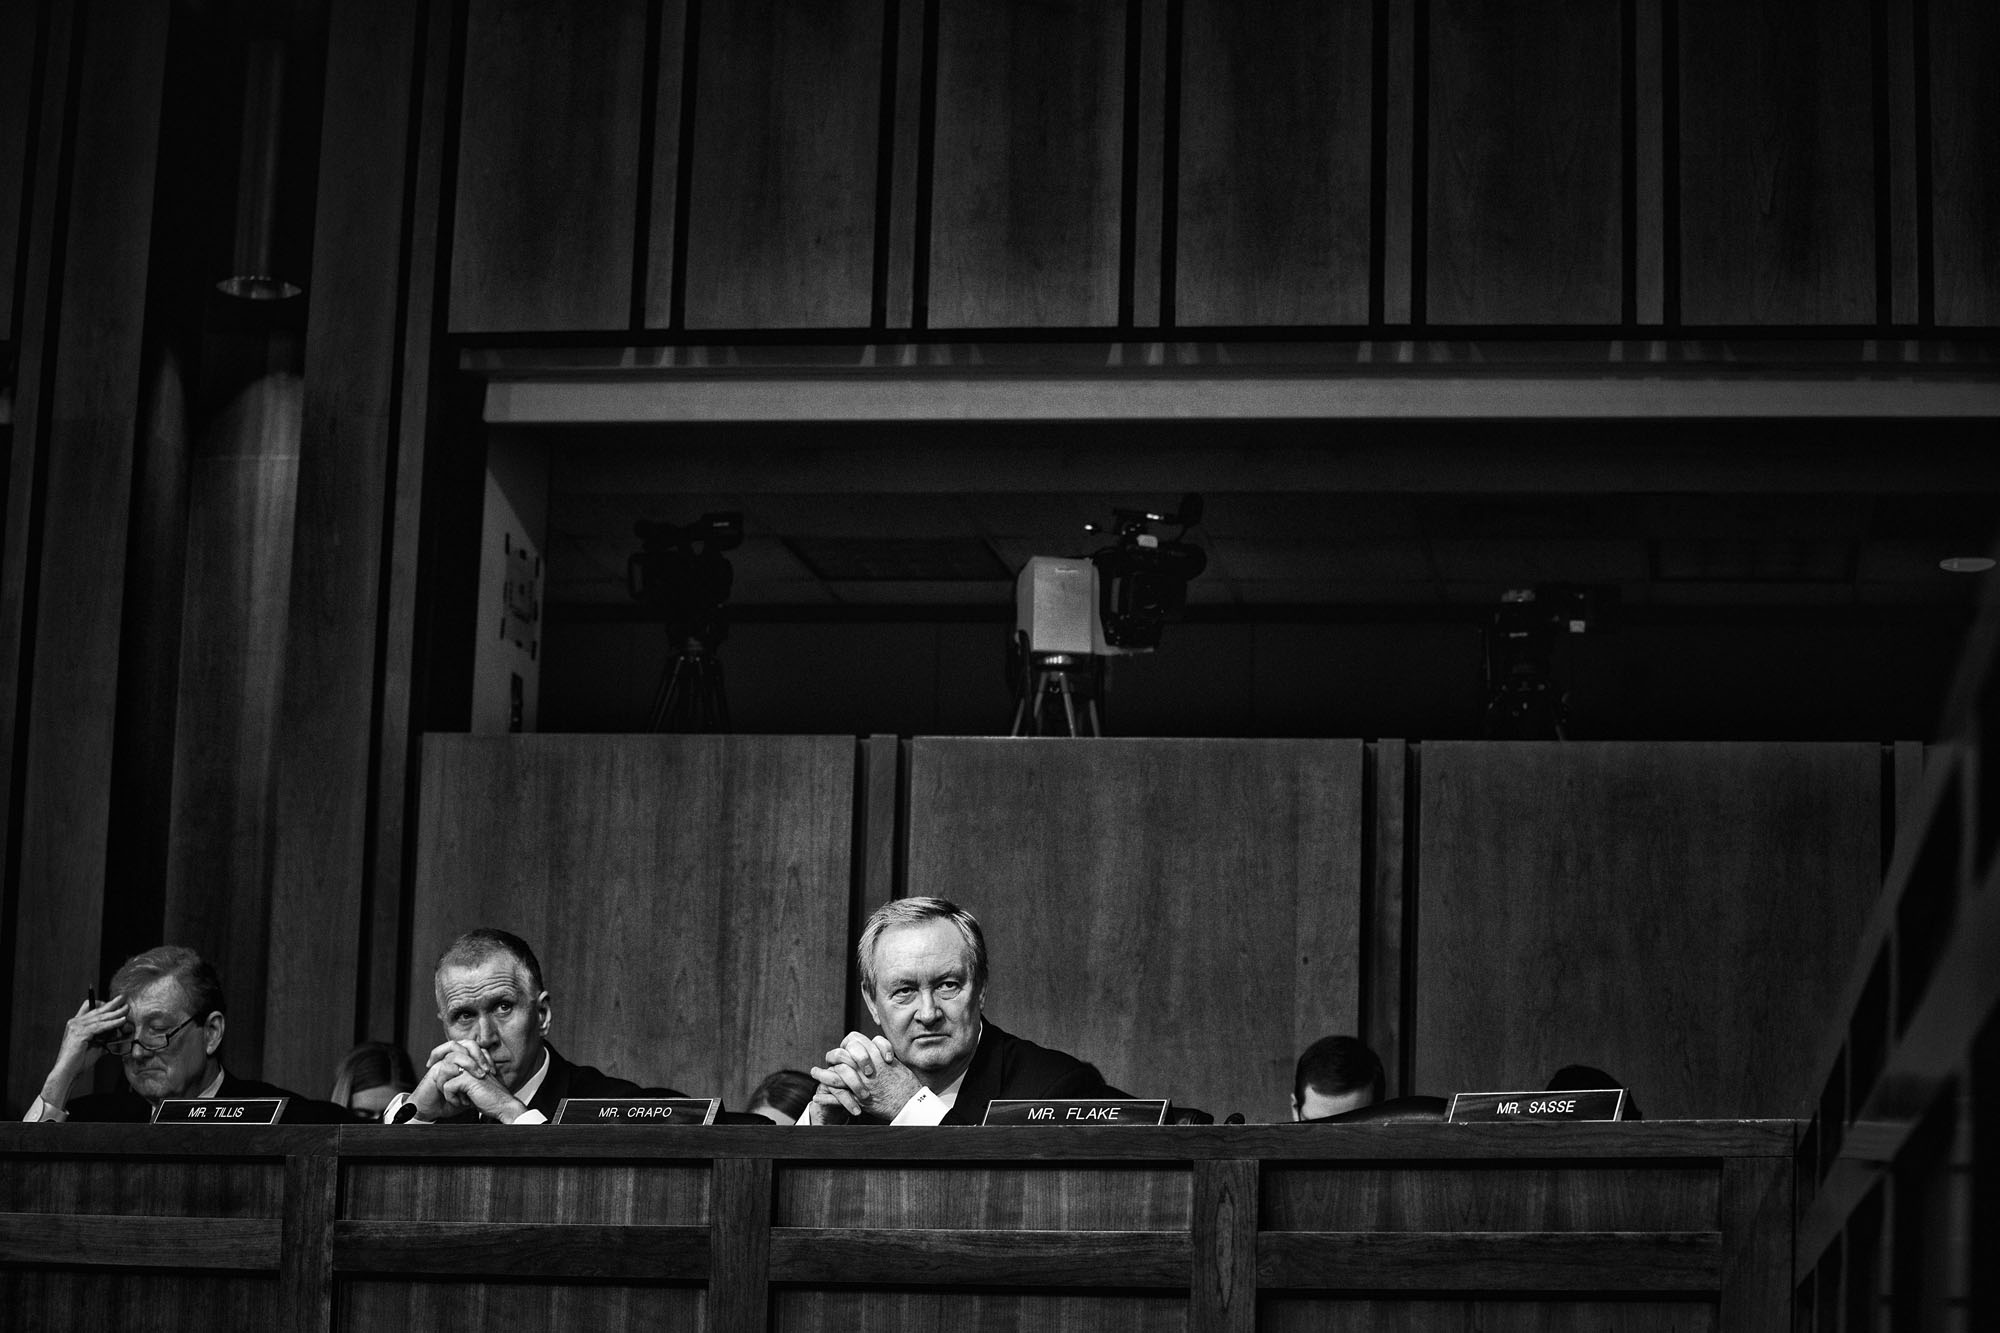 Senators Kennedy, Tillis and Crapo (L to R) listen to the testimony of Judge Neil Gorsuch during the third day of his Supreme Court confirmation hearing before the Senate Judiciary Committee on March 22, 2017.